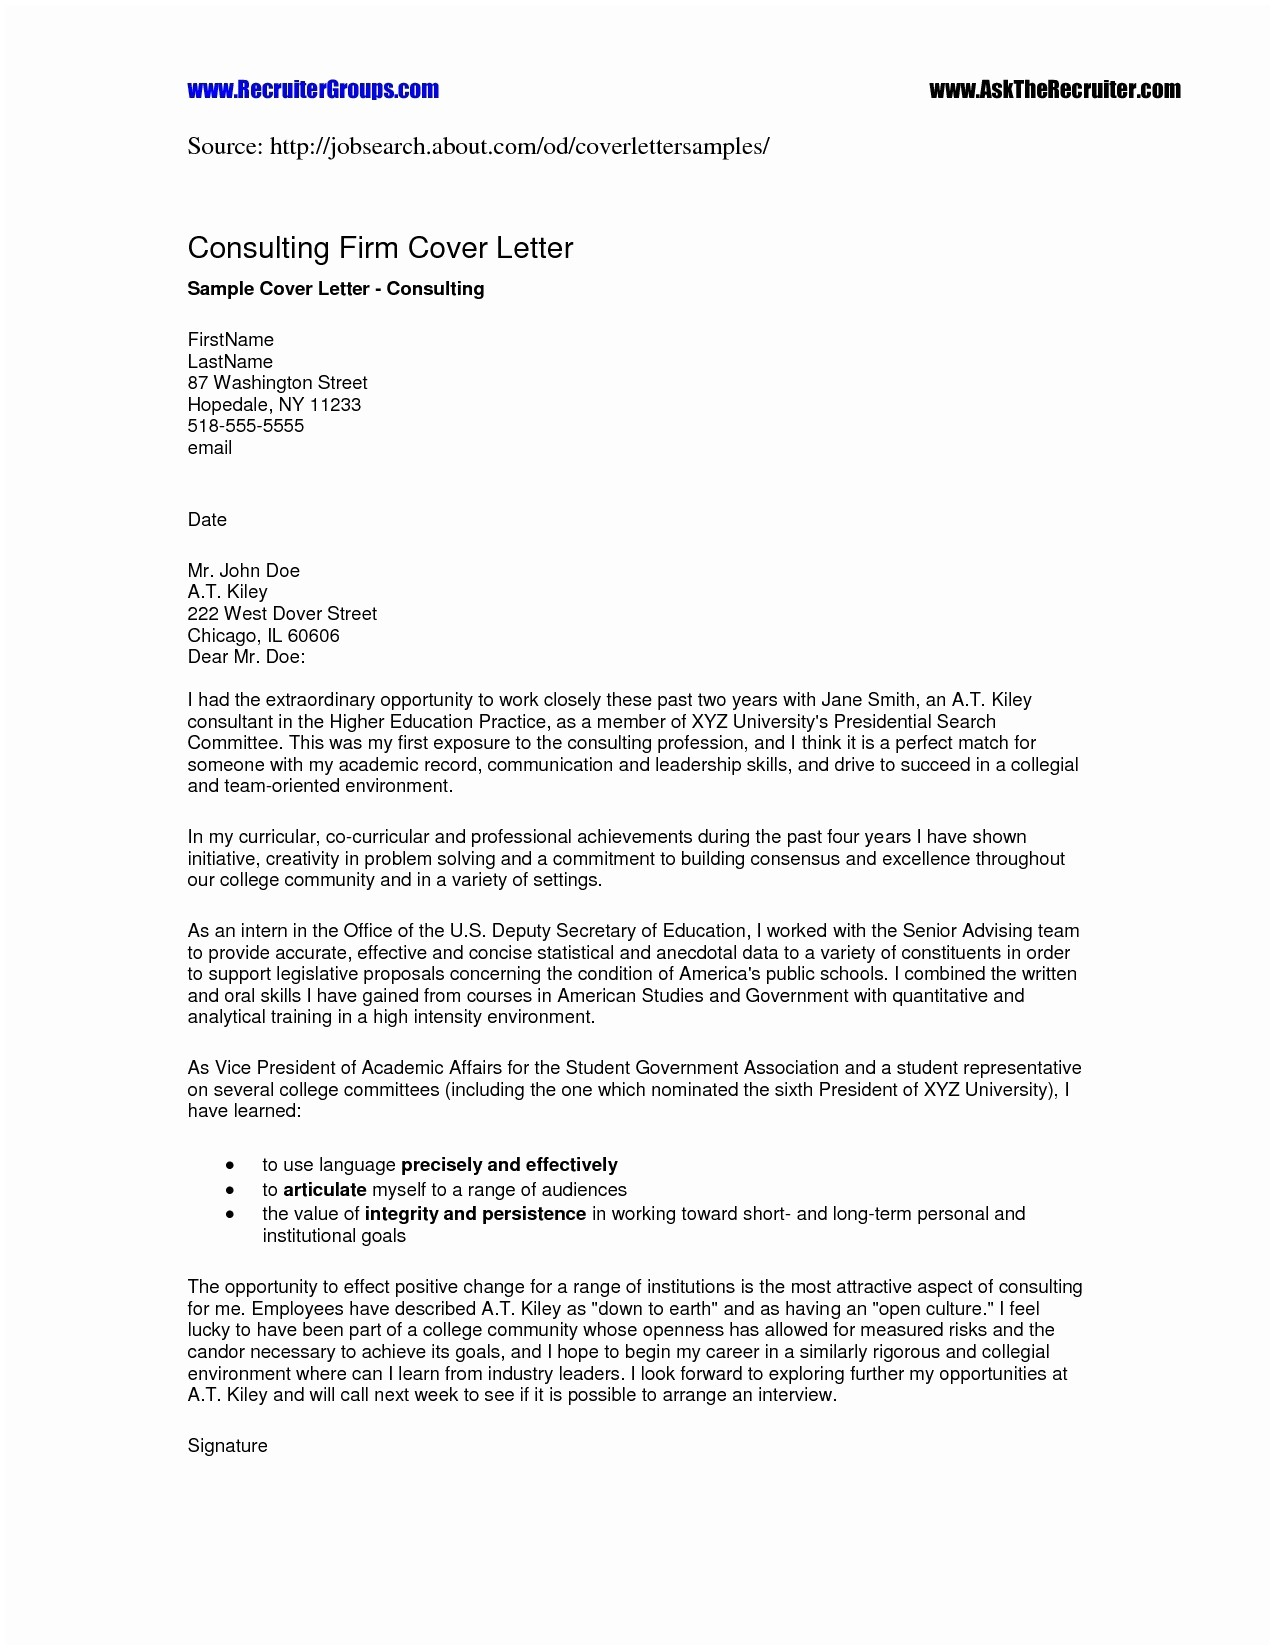 debt collection letter template example-Debt Collection Letter 20 Debt Collector Job Description 20-k